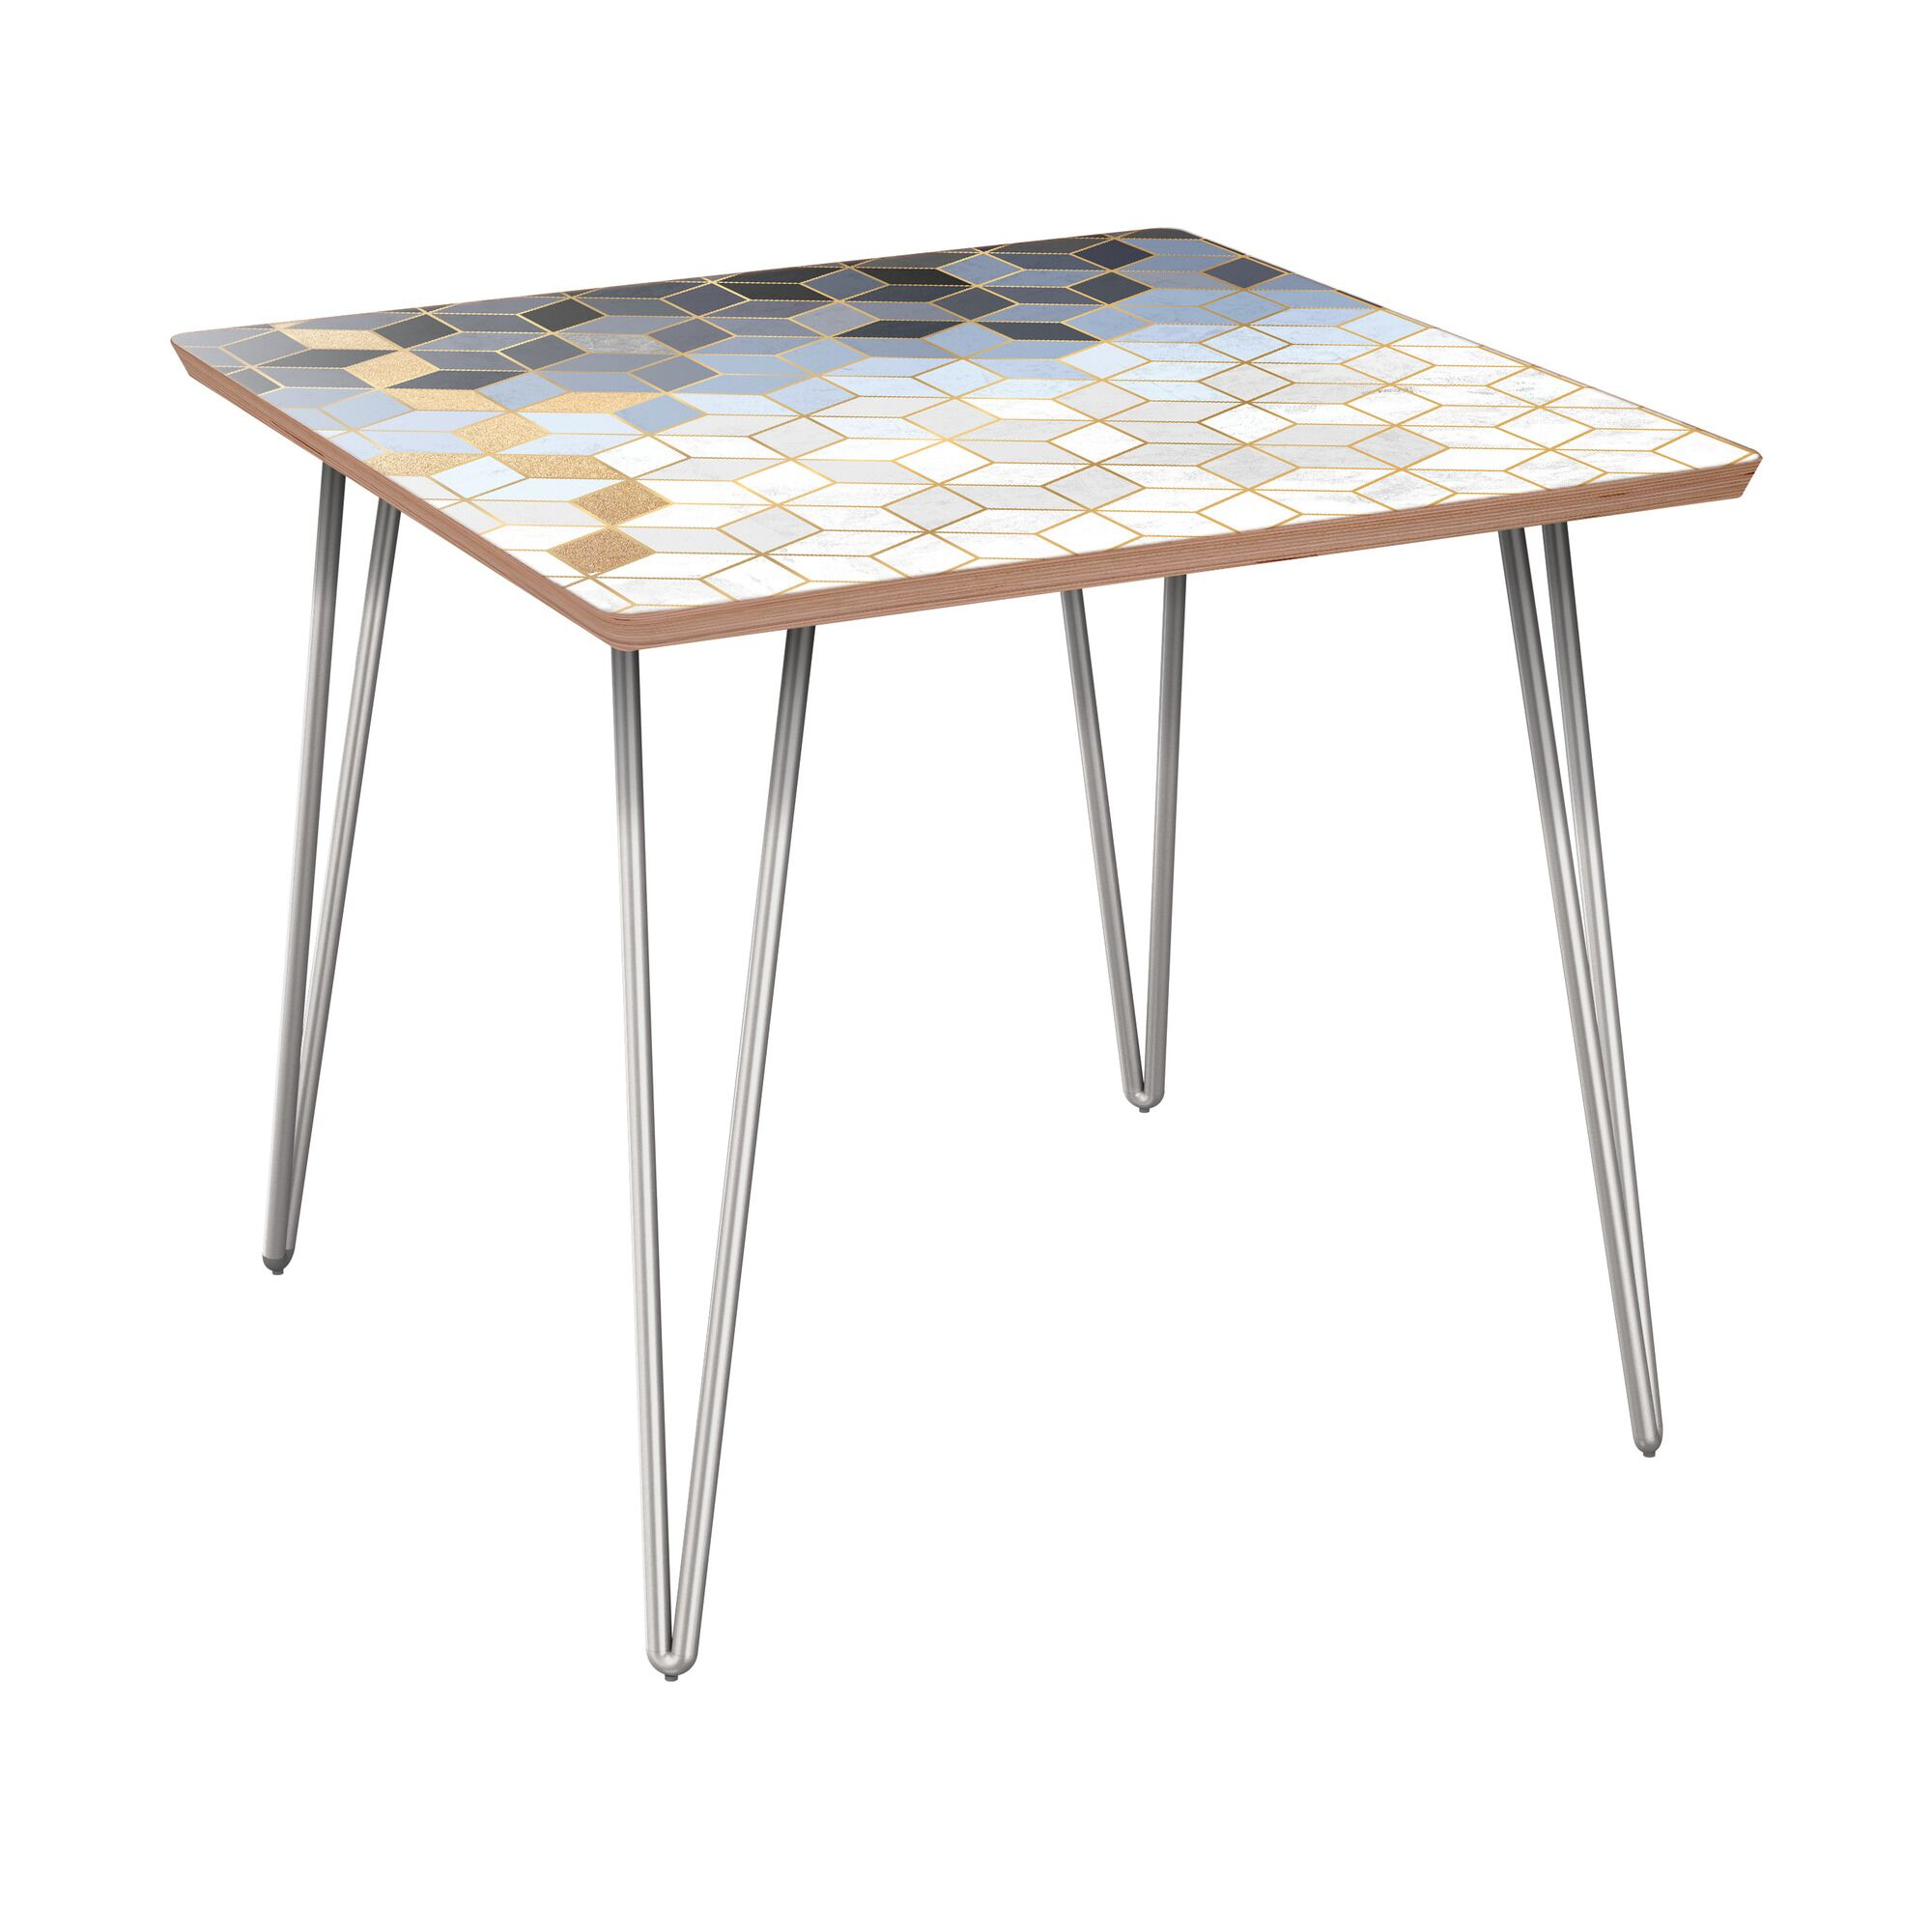 Anacortes End Table Table Base Color: Chrome, Table Top Color: Walnut